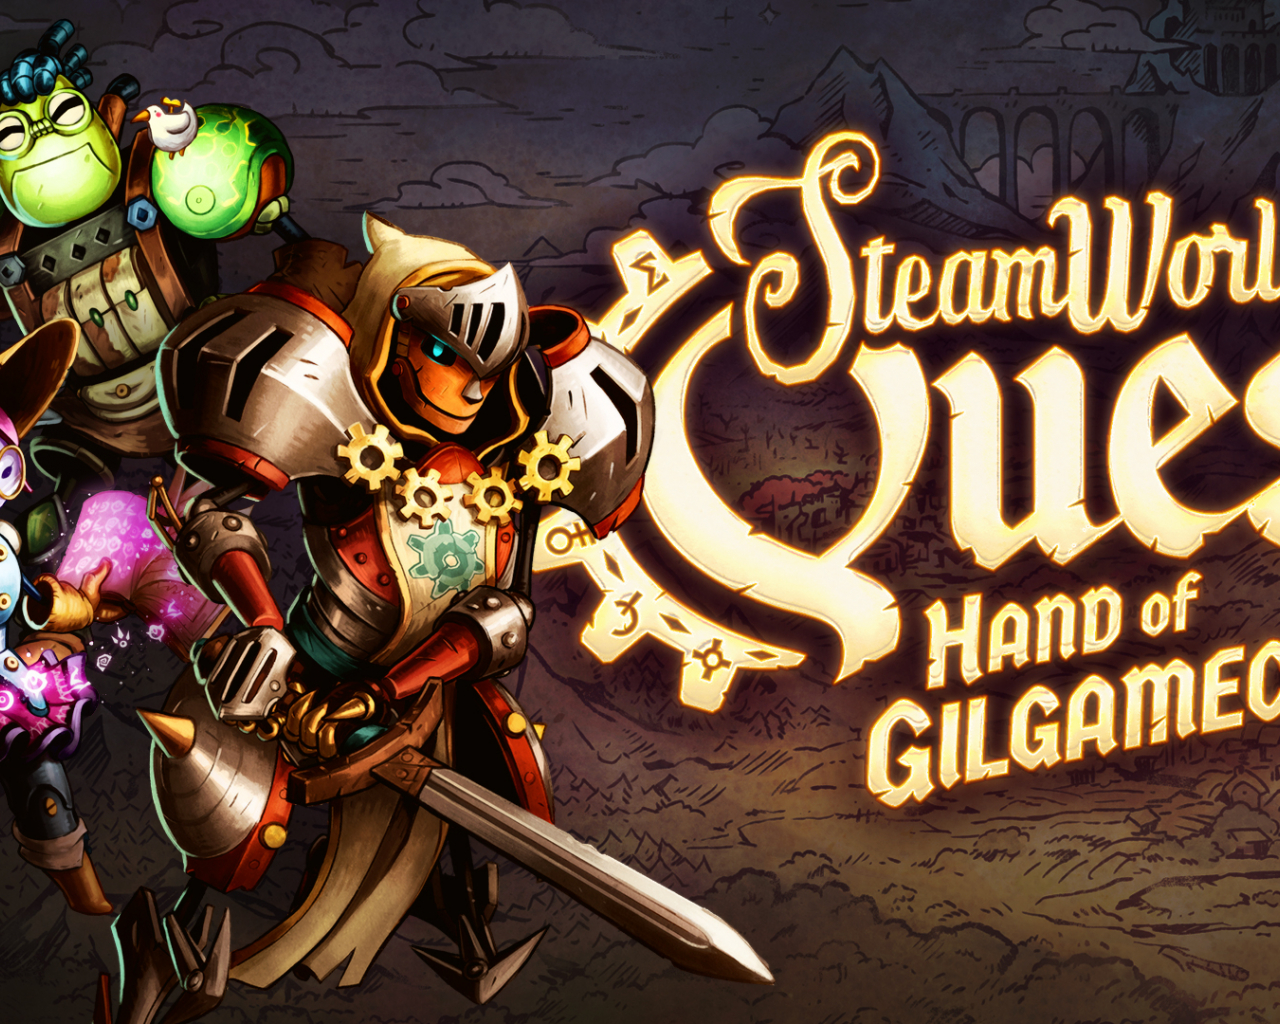 steamworld quest official website image form games